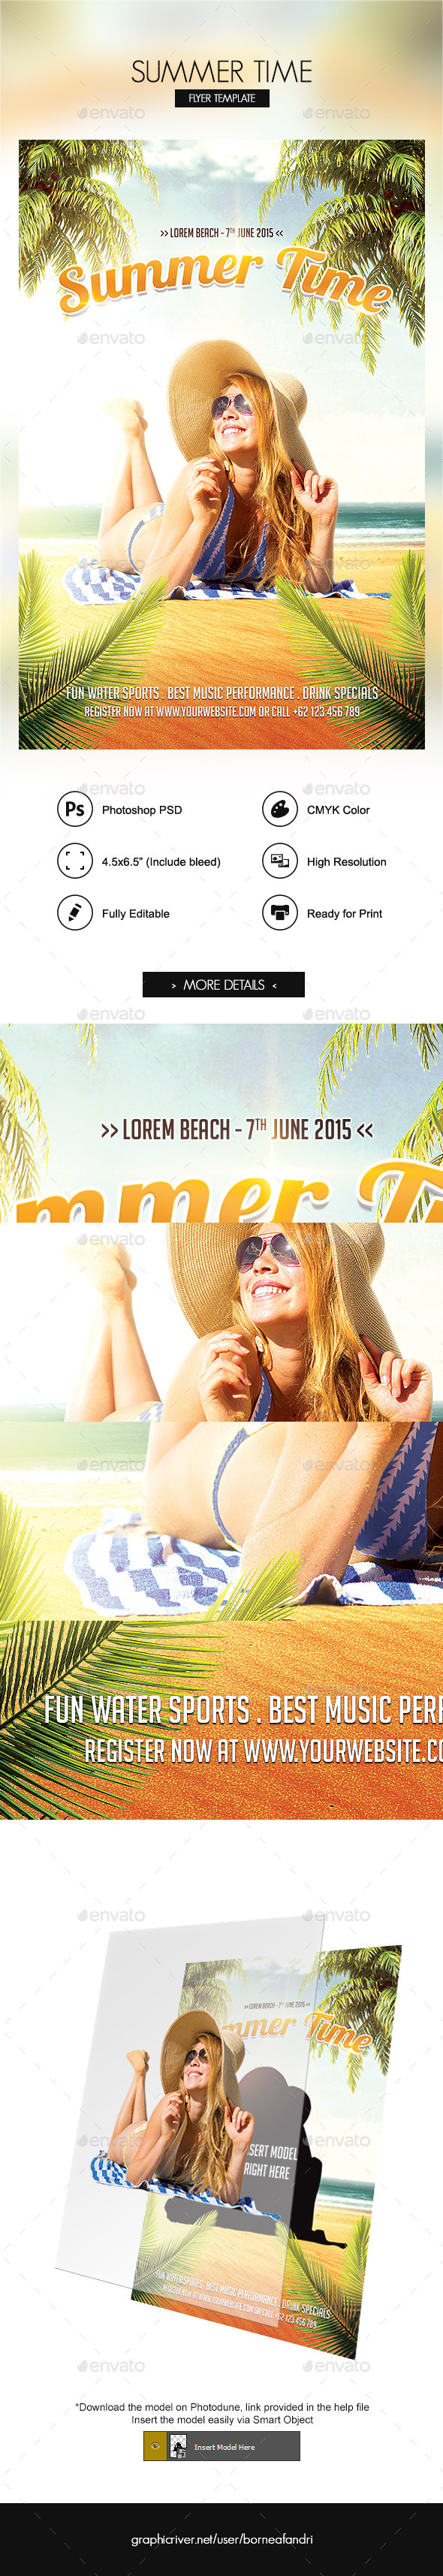 GraphicRiver Summer Time Flyer 11285932